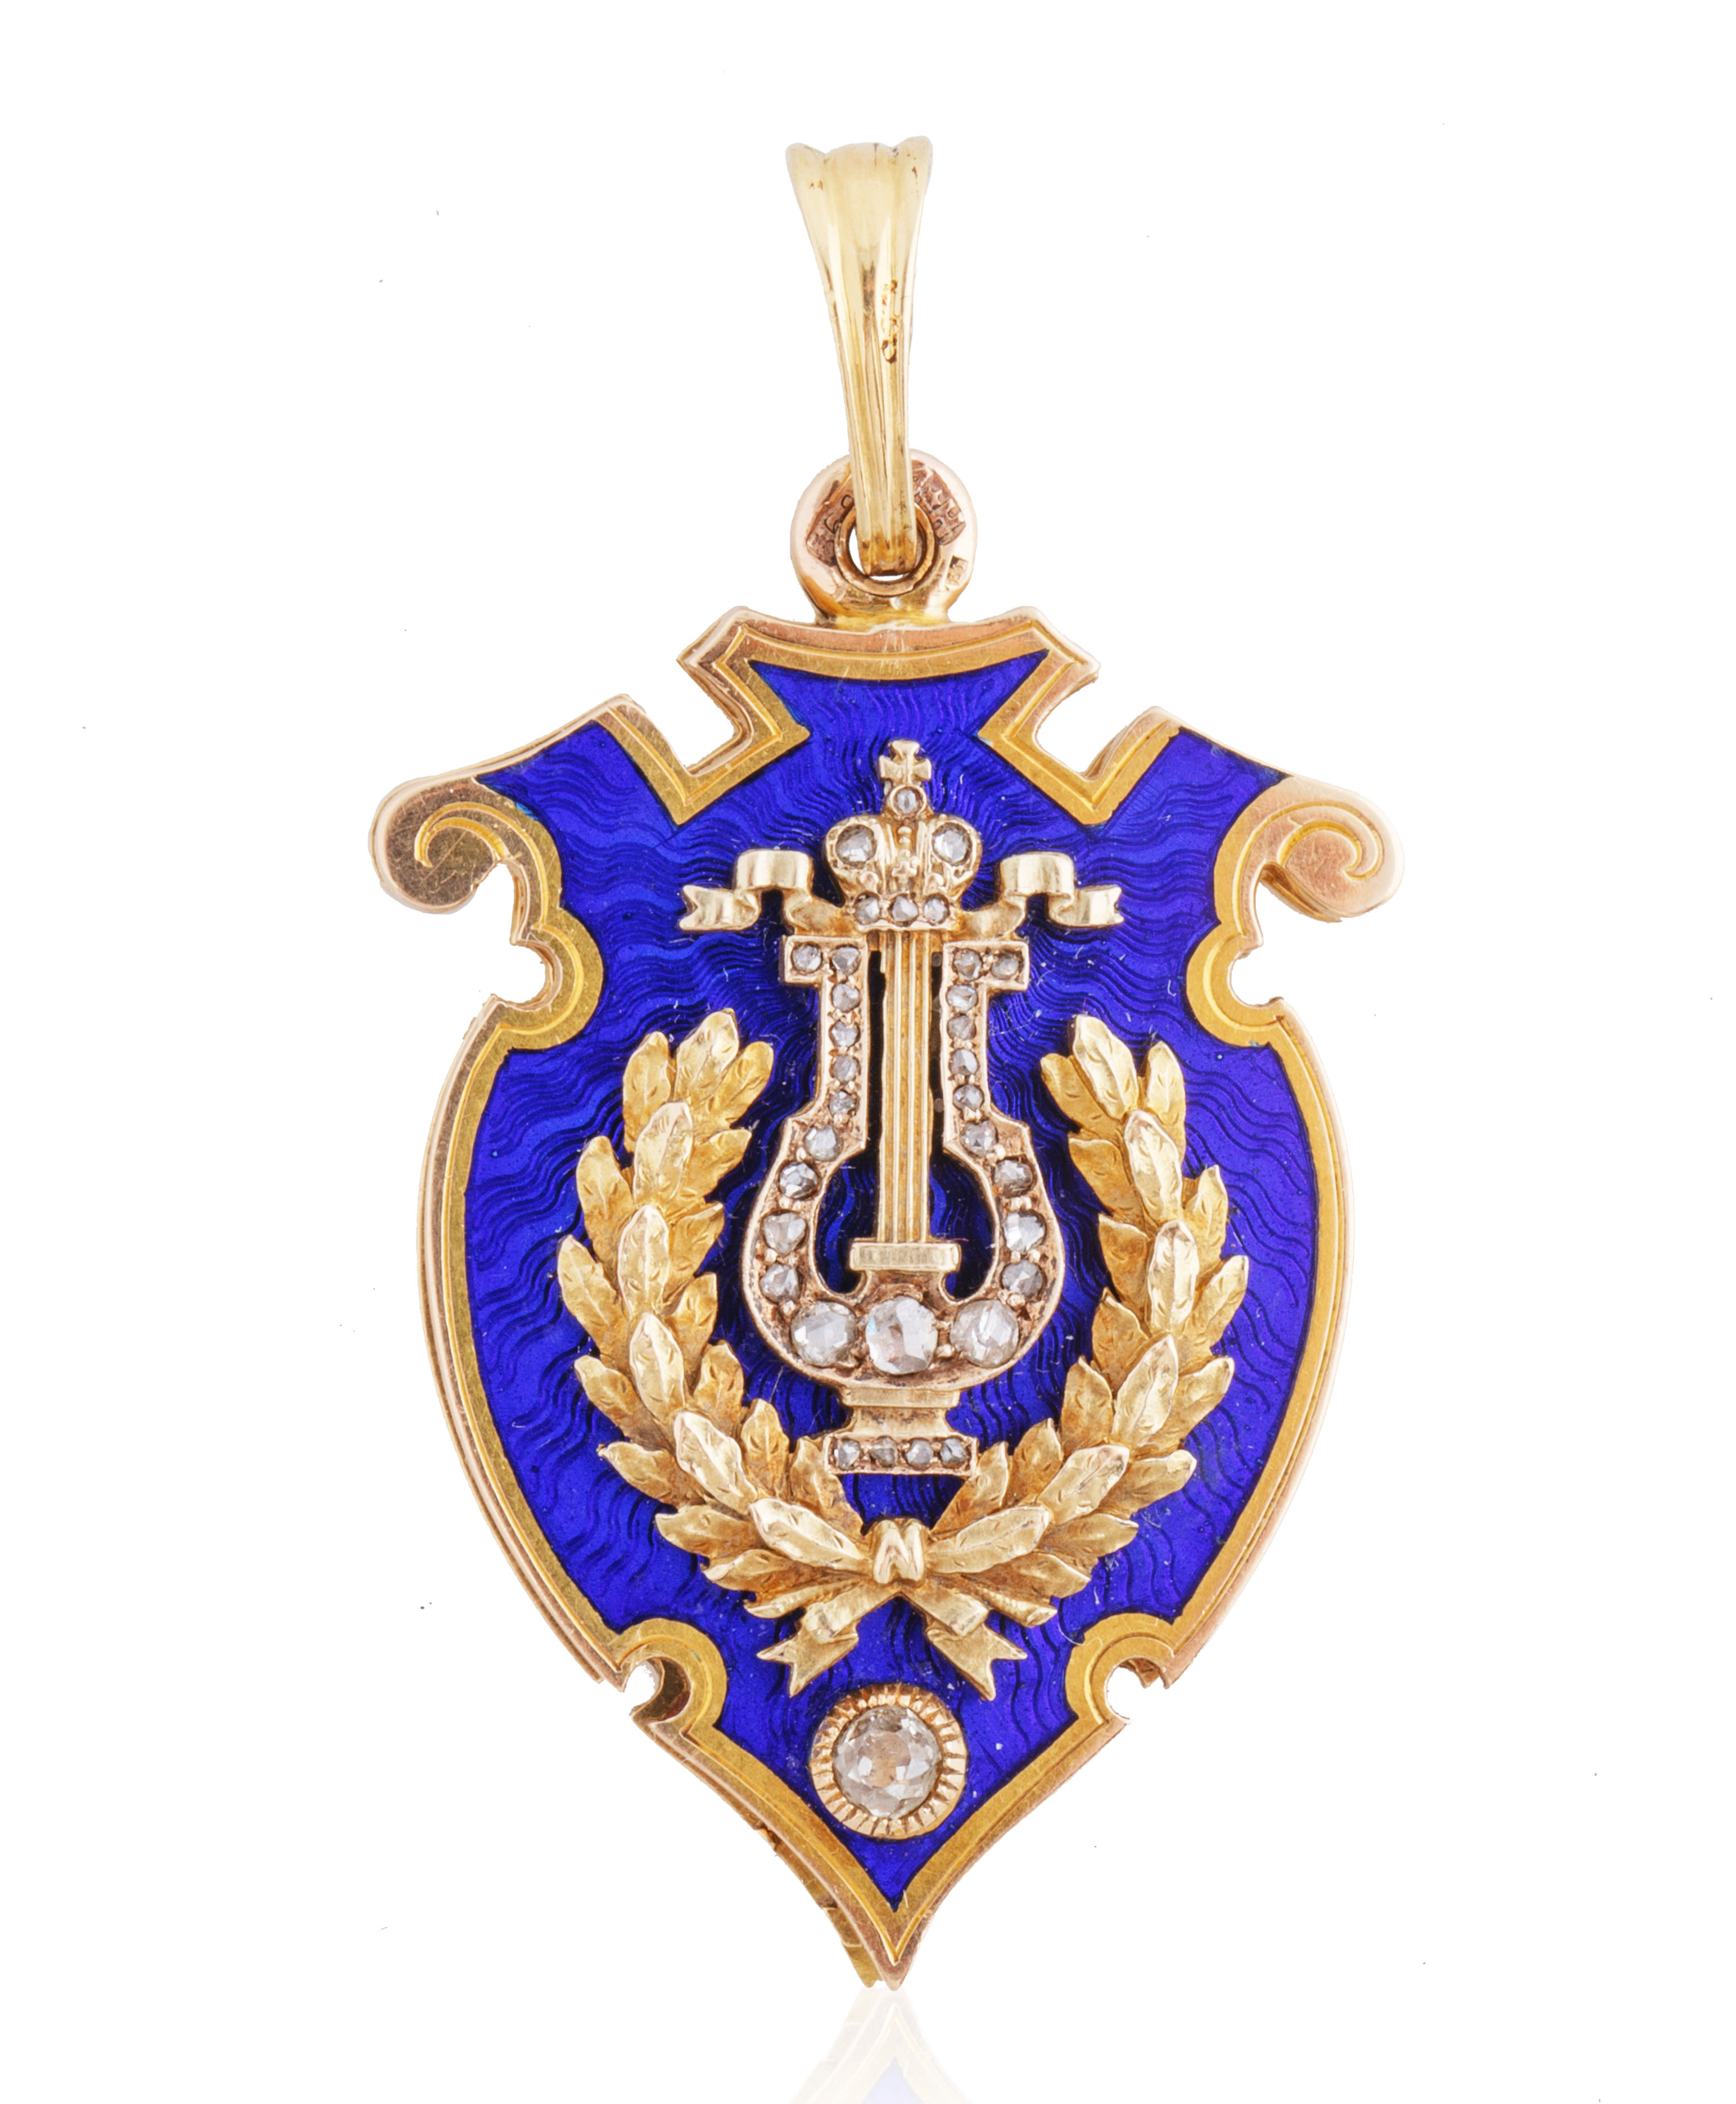 A 1899-1904 FABERGE GOLD, DIAMOND AND ENAMEL PRESENTATION LOCKET, WORKMASTER AUGUST HOLLMING